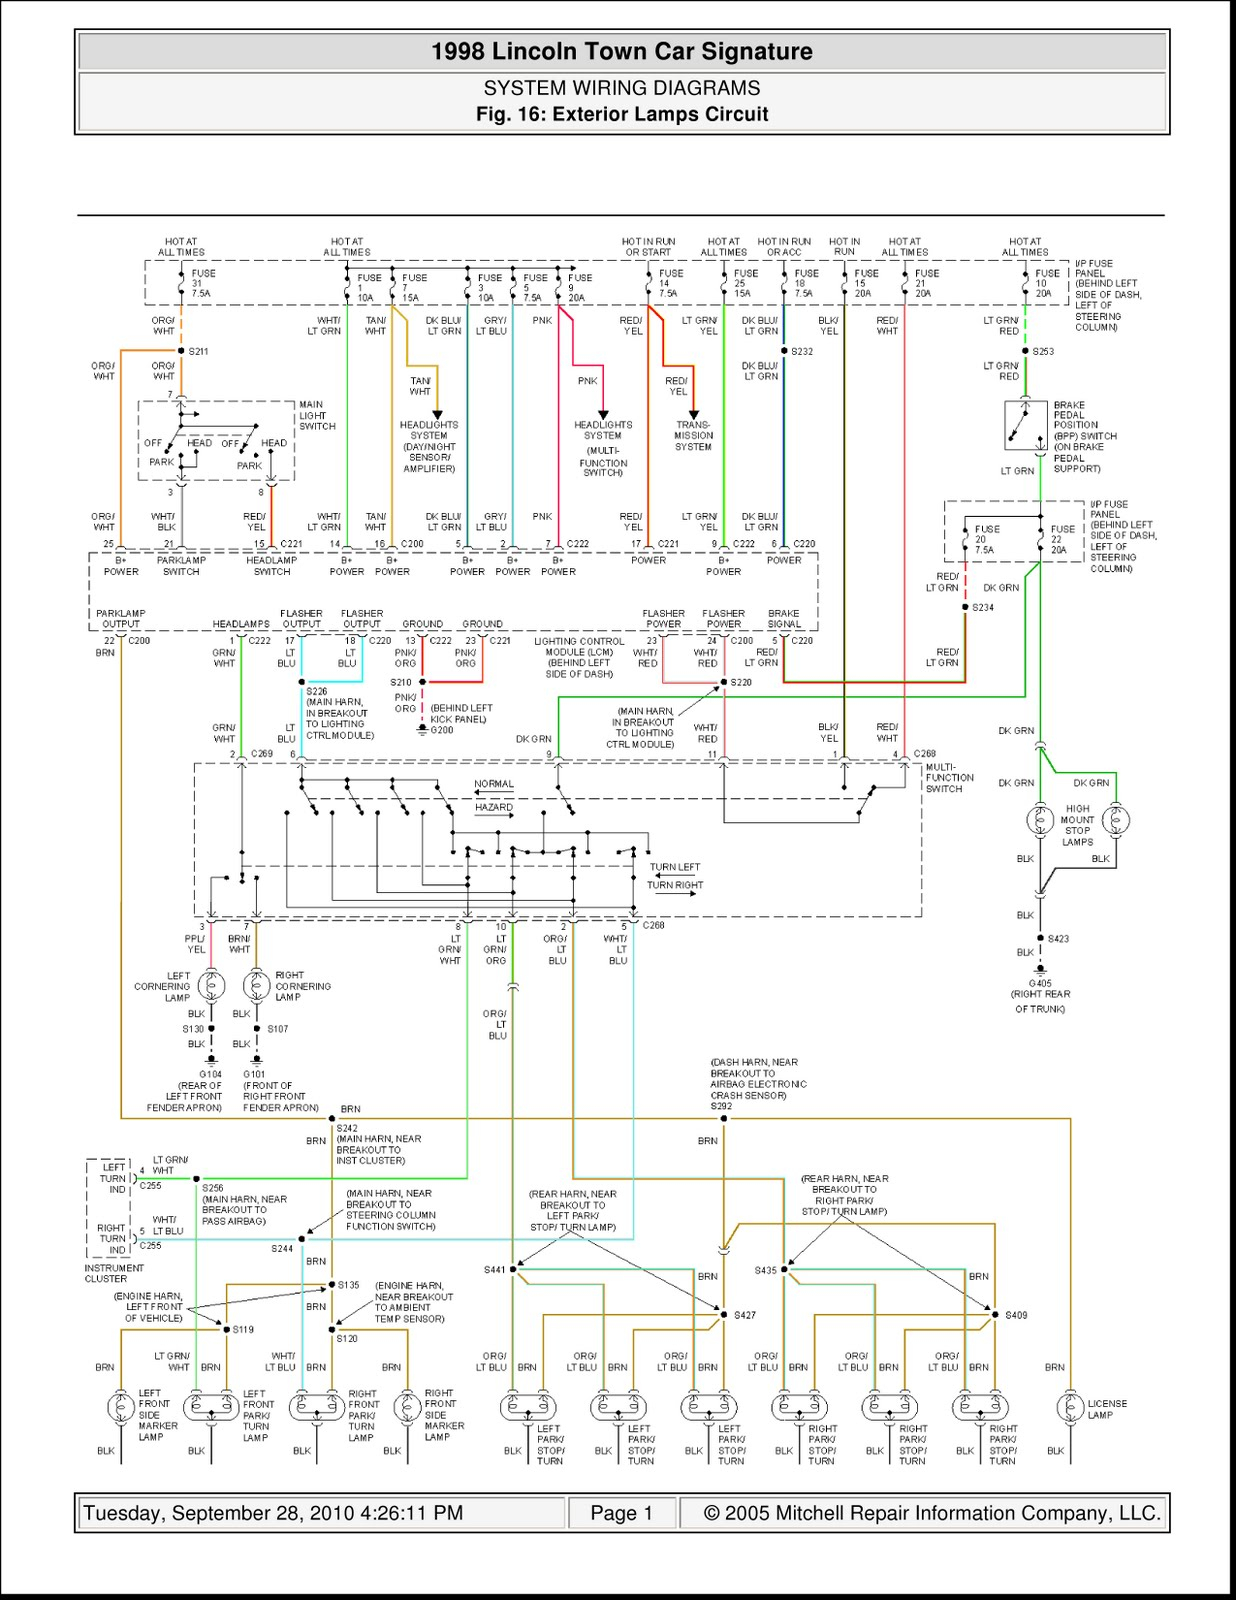 2003 lincoln town car wiring diagram Download-2003 Lincoln town Car Wiring Diagram Lovely Ponent Electric Diagram Maker Wiring Coffee Francisfrancis X1 3-q